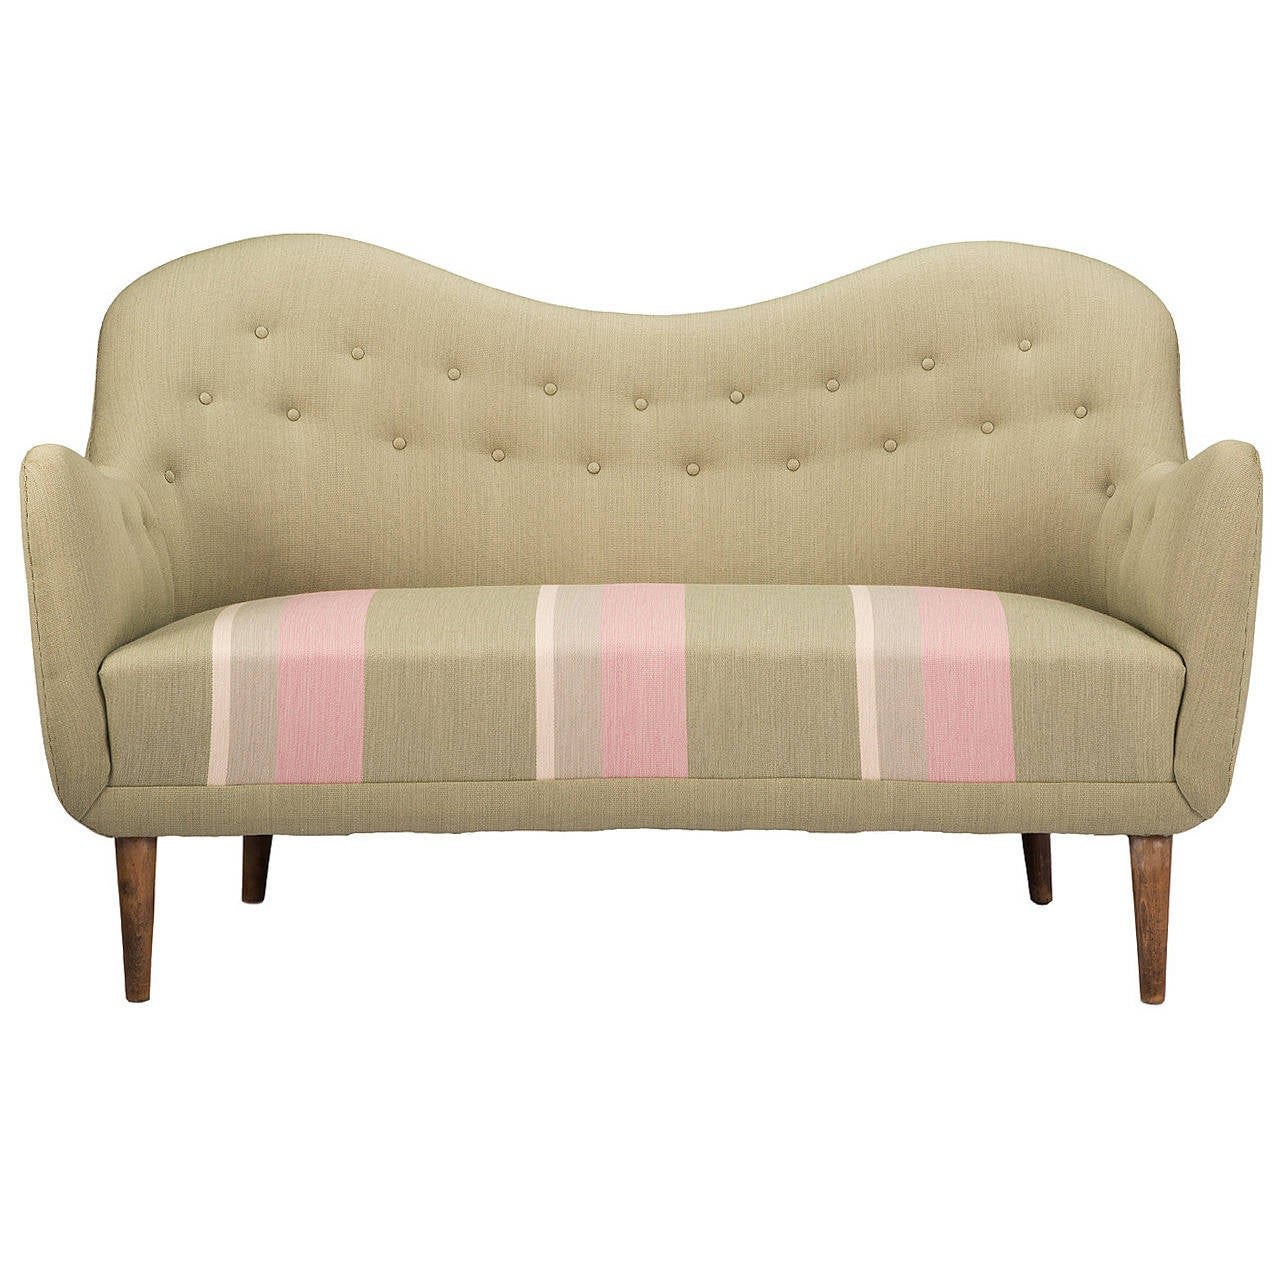 Finn Juhl Sofa for Bovirke BO 46